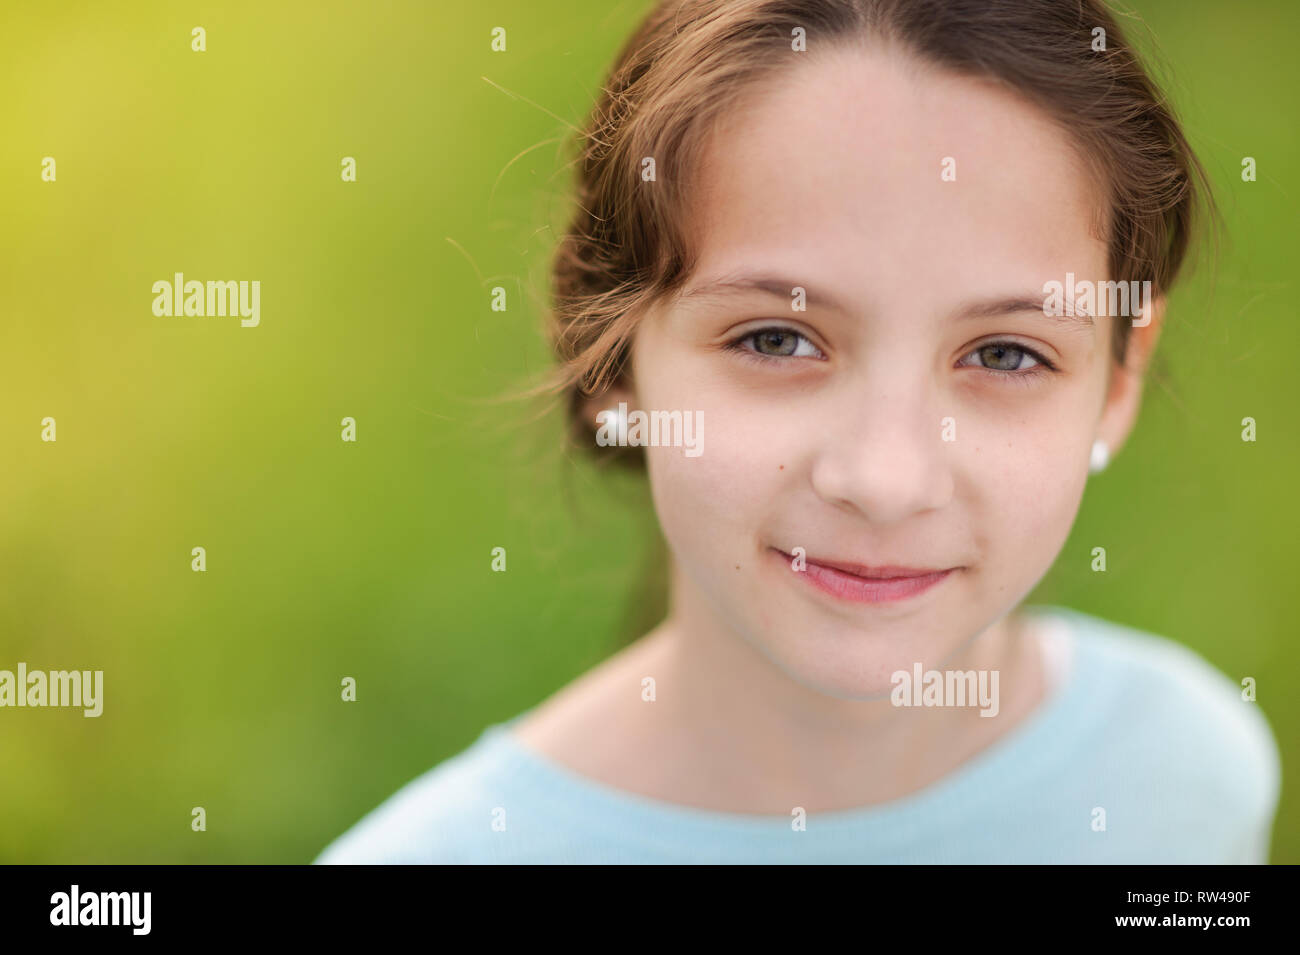 closeup portrait of happy smiling little caucasian girl in earrings and blue blouse on warm green background Stock Photo